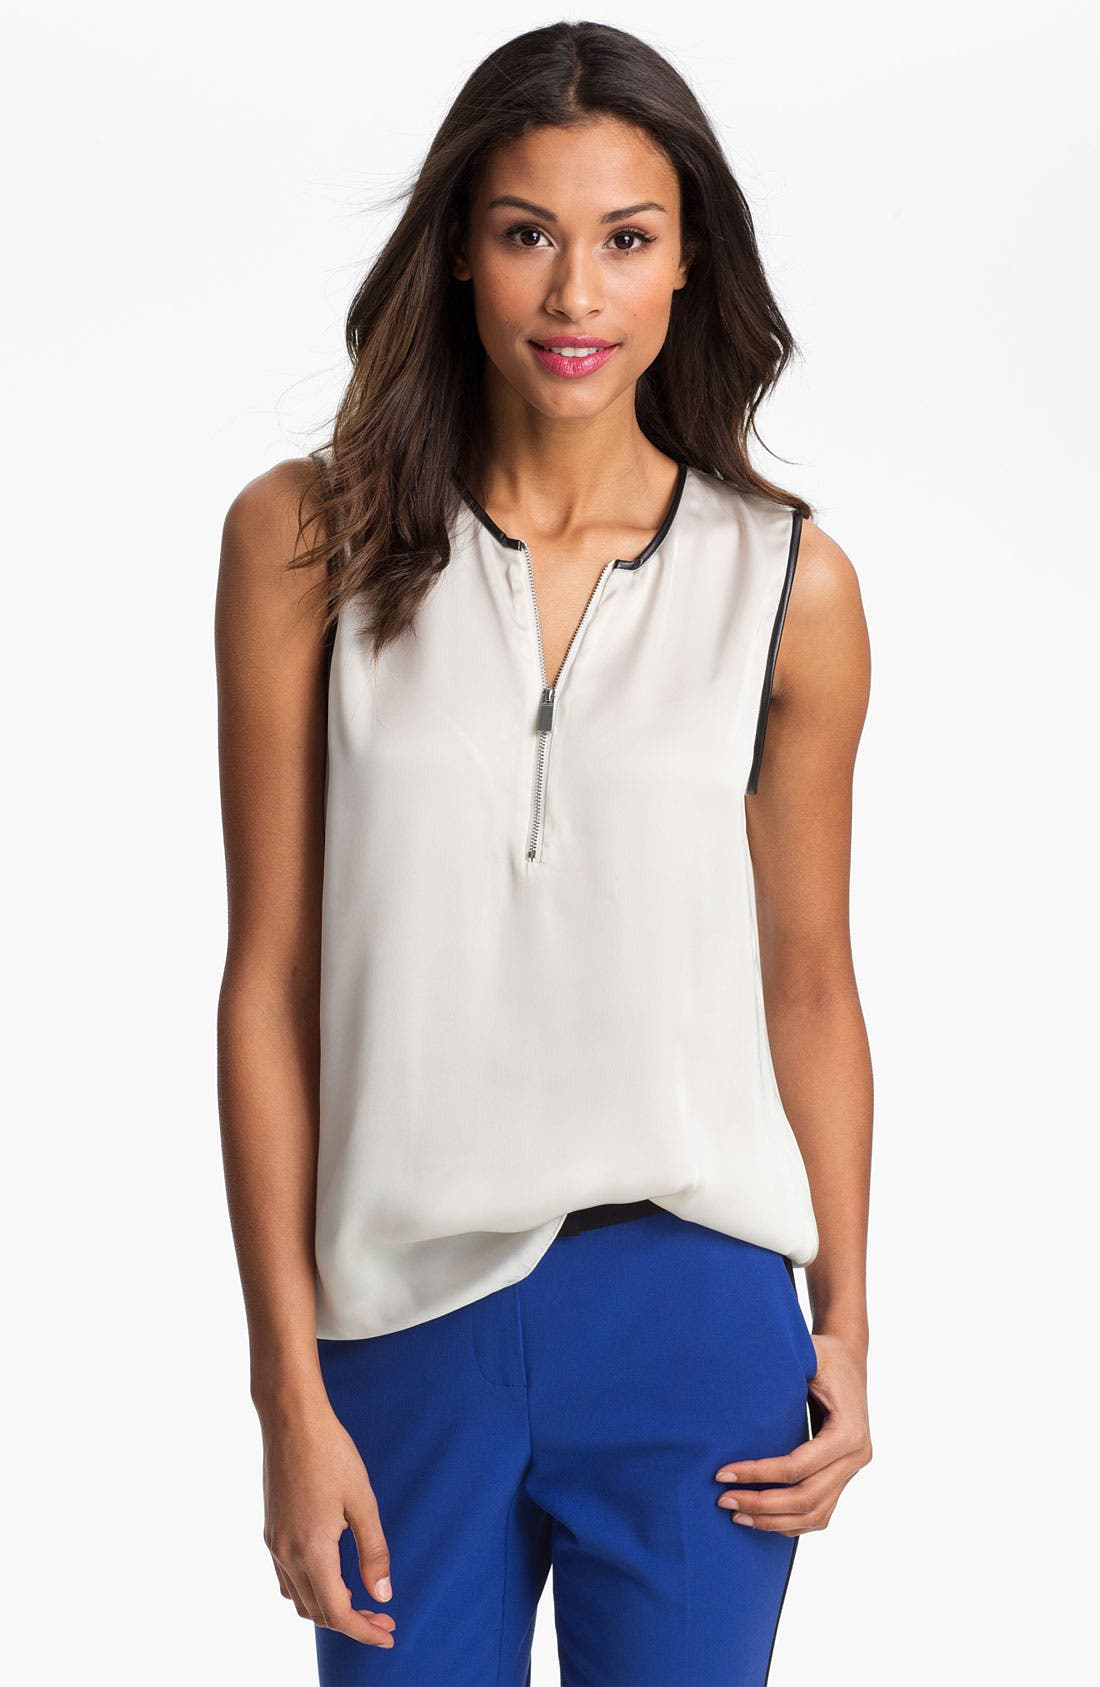 Alternate Image 1 Selected - Vince Camuto Faux Leather Trim Henley Blouse